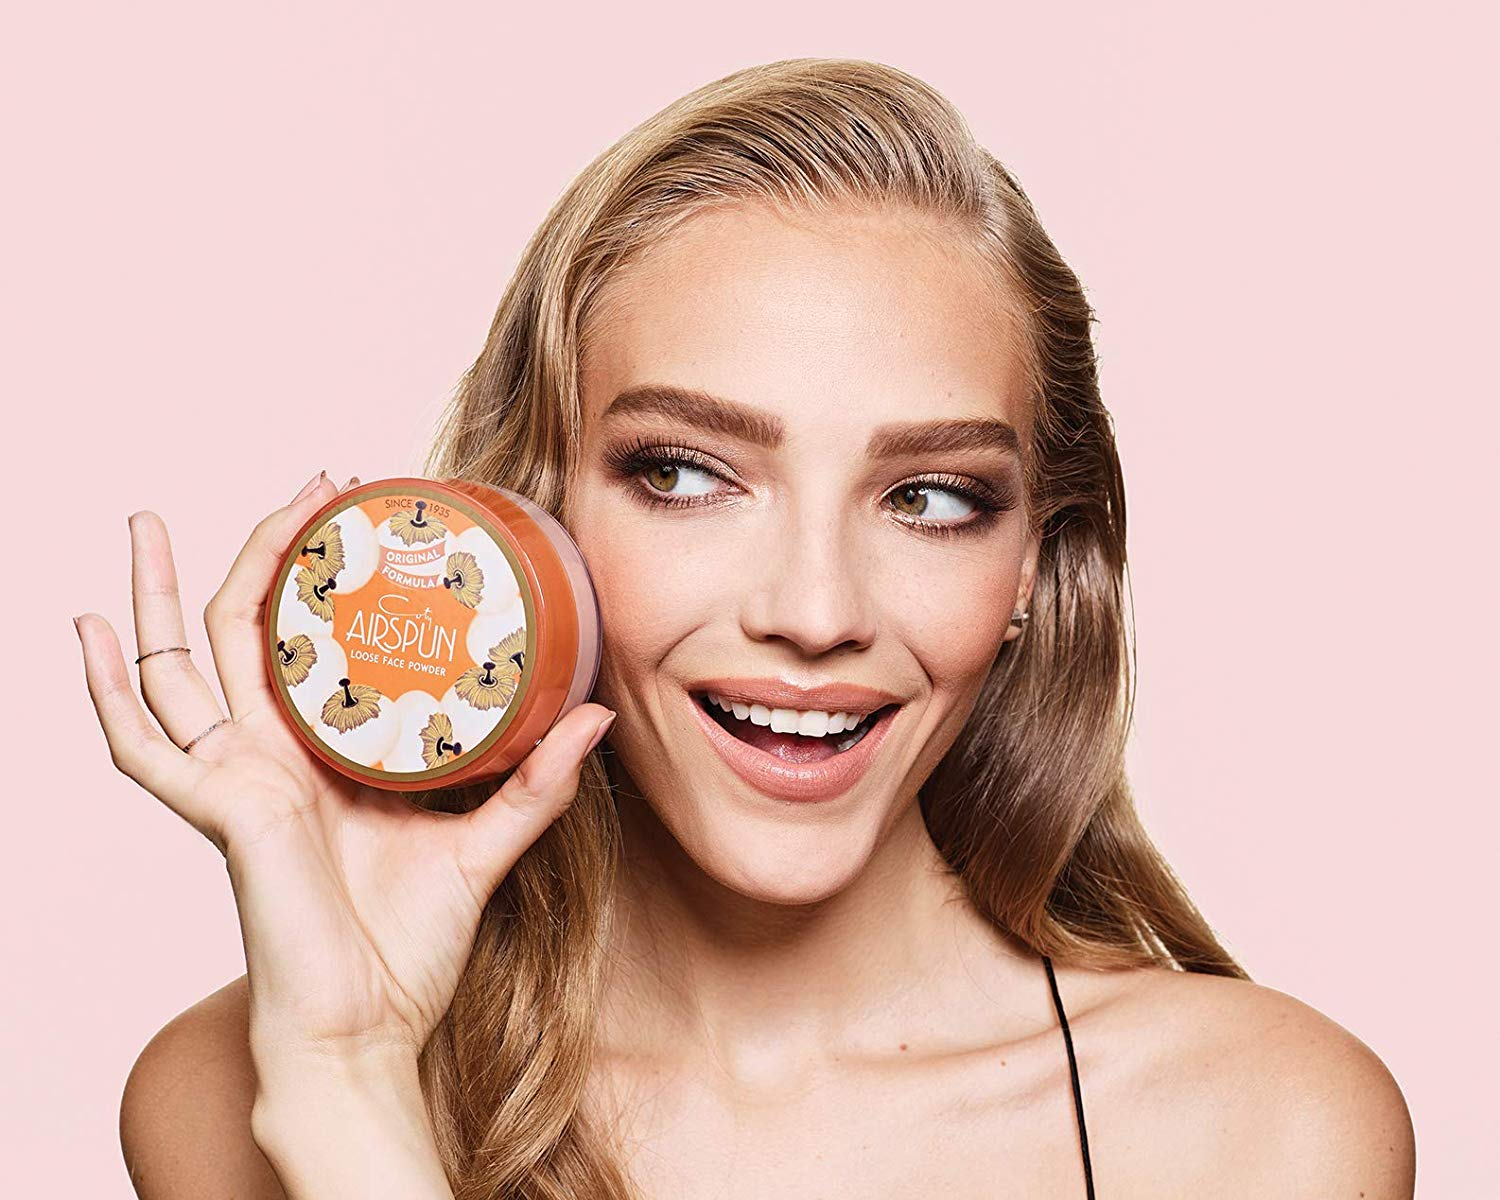 Coty Airspun Loose Face Powder Finisher